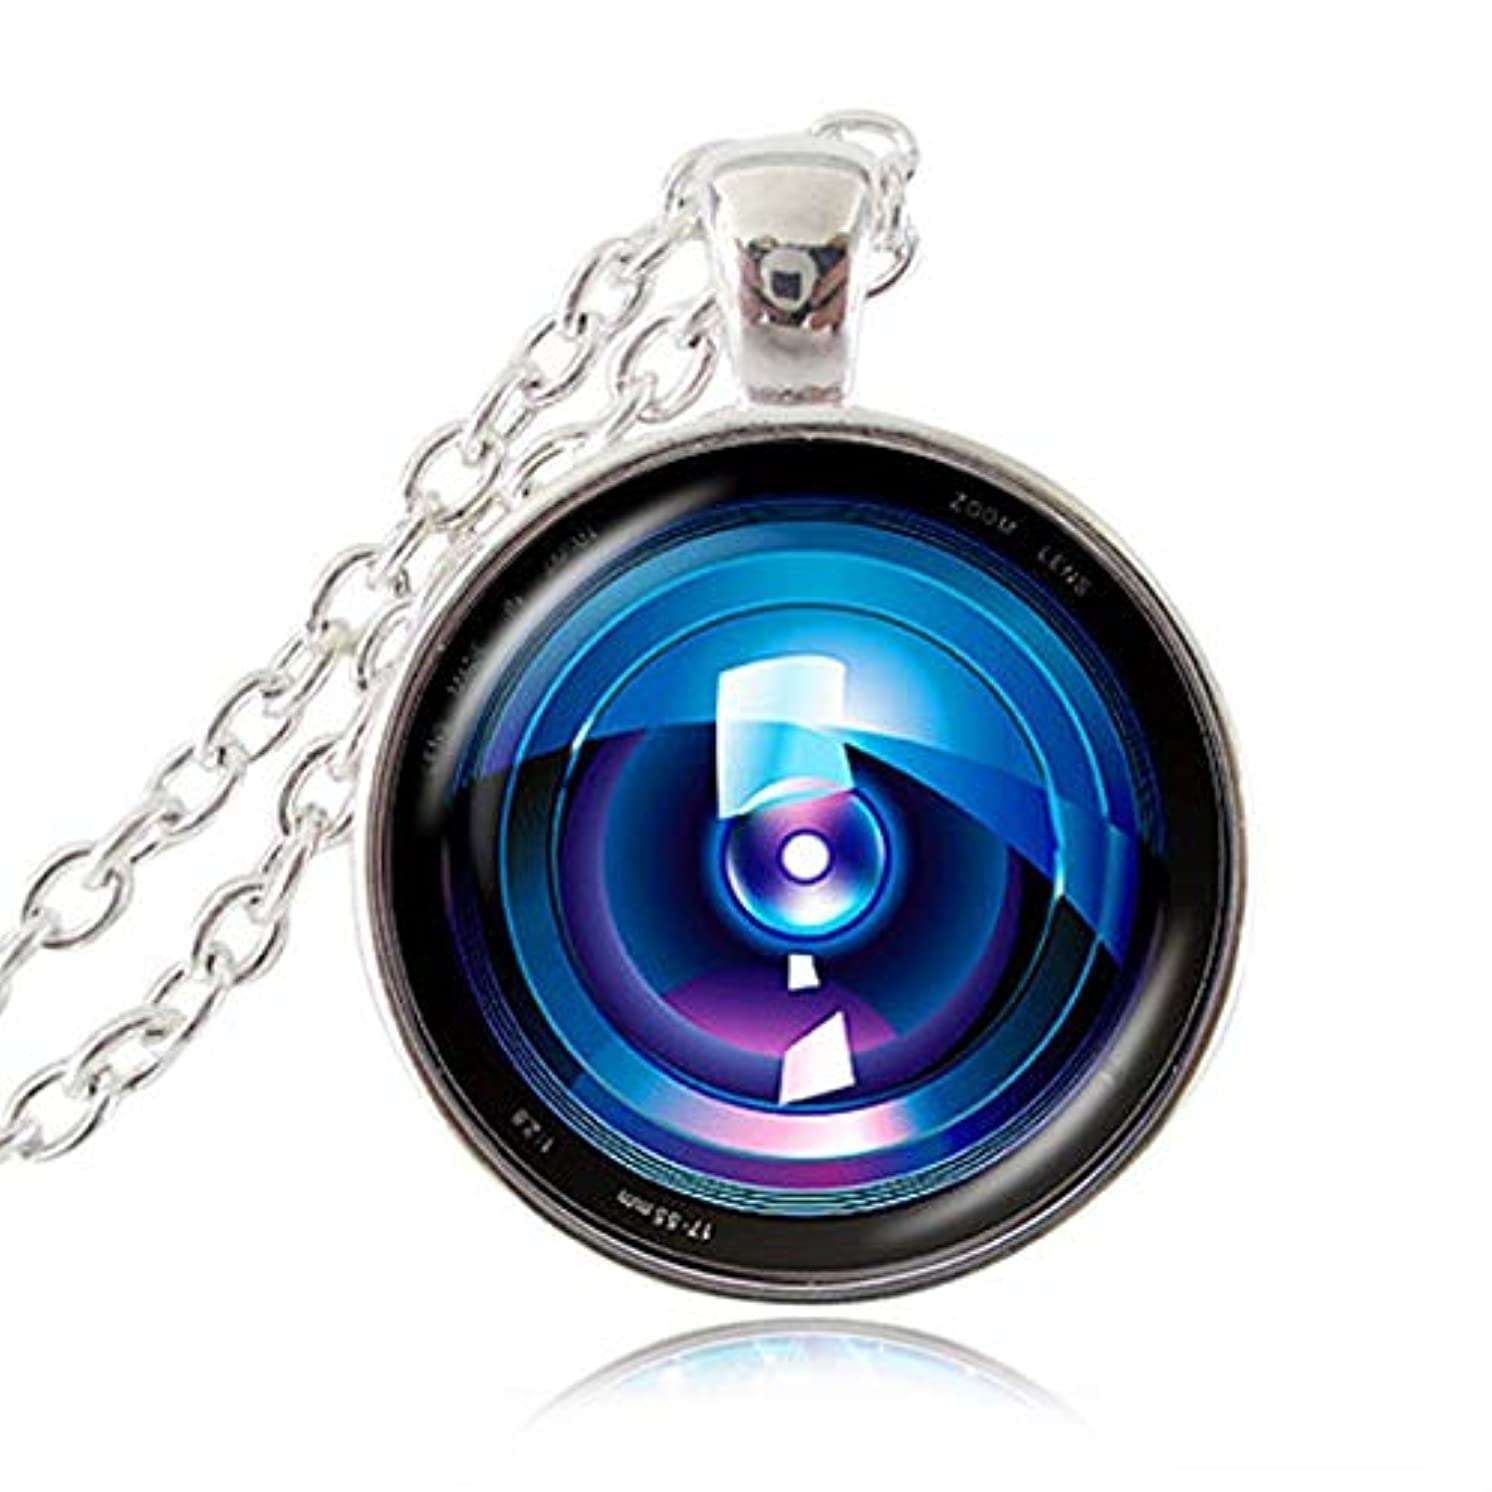 Camera Lens Pendant Vintage Photo Necklace Glass Cabochon Jewelry Old Lenses Chain Necklace Gift for The Photographer